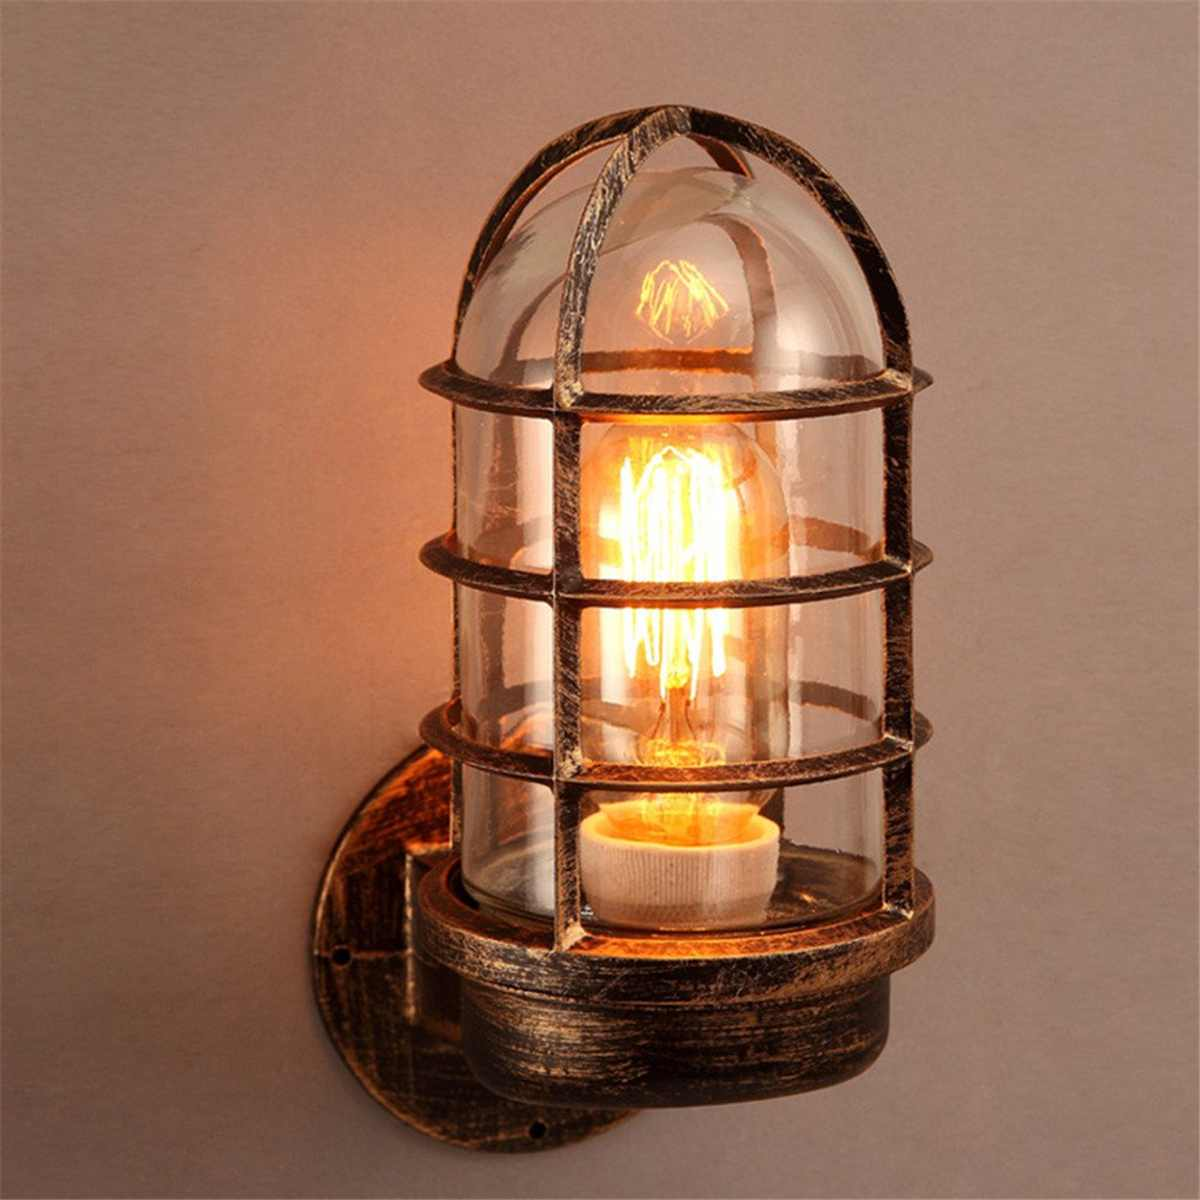 timeless design ffe01 c4fc7 US $19.75 10% OFF|Industrial Unique Wall Light Wall Sconces Cage Guard  Sconce Loft Light Fixture Modern Indoor Lighting Wall Lamps Iron Copper-in  Wall ...